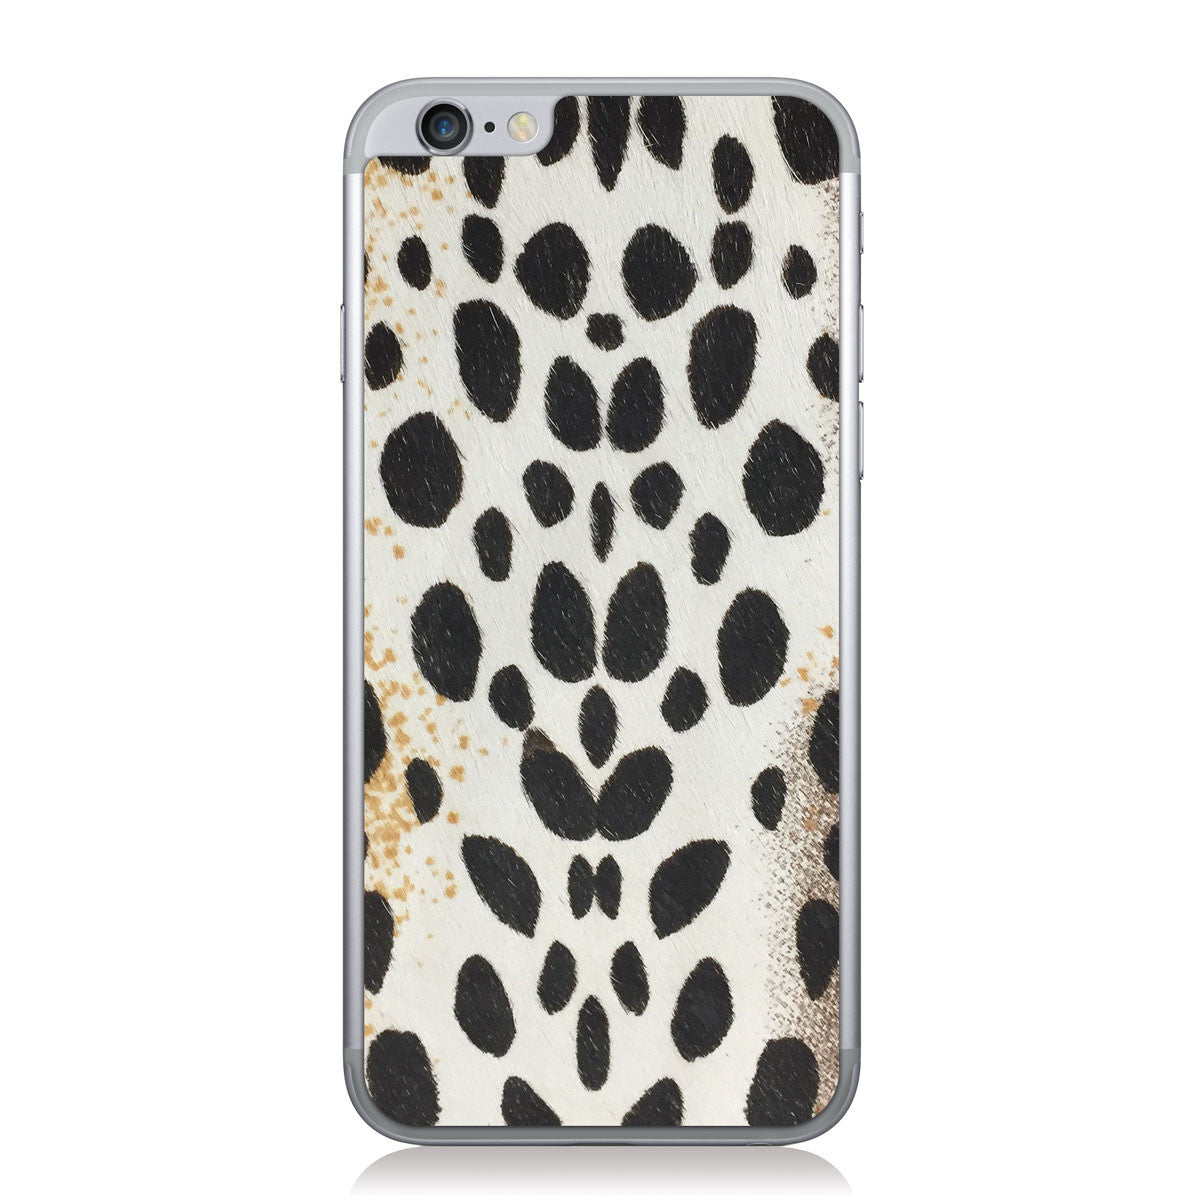 White Cheetah Print Pony iPhone 6/6s Leather Skin